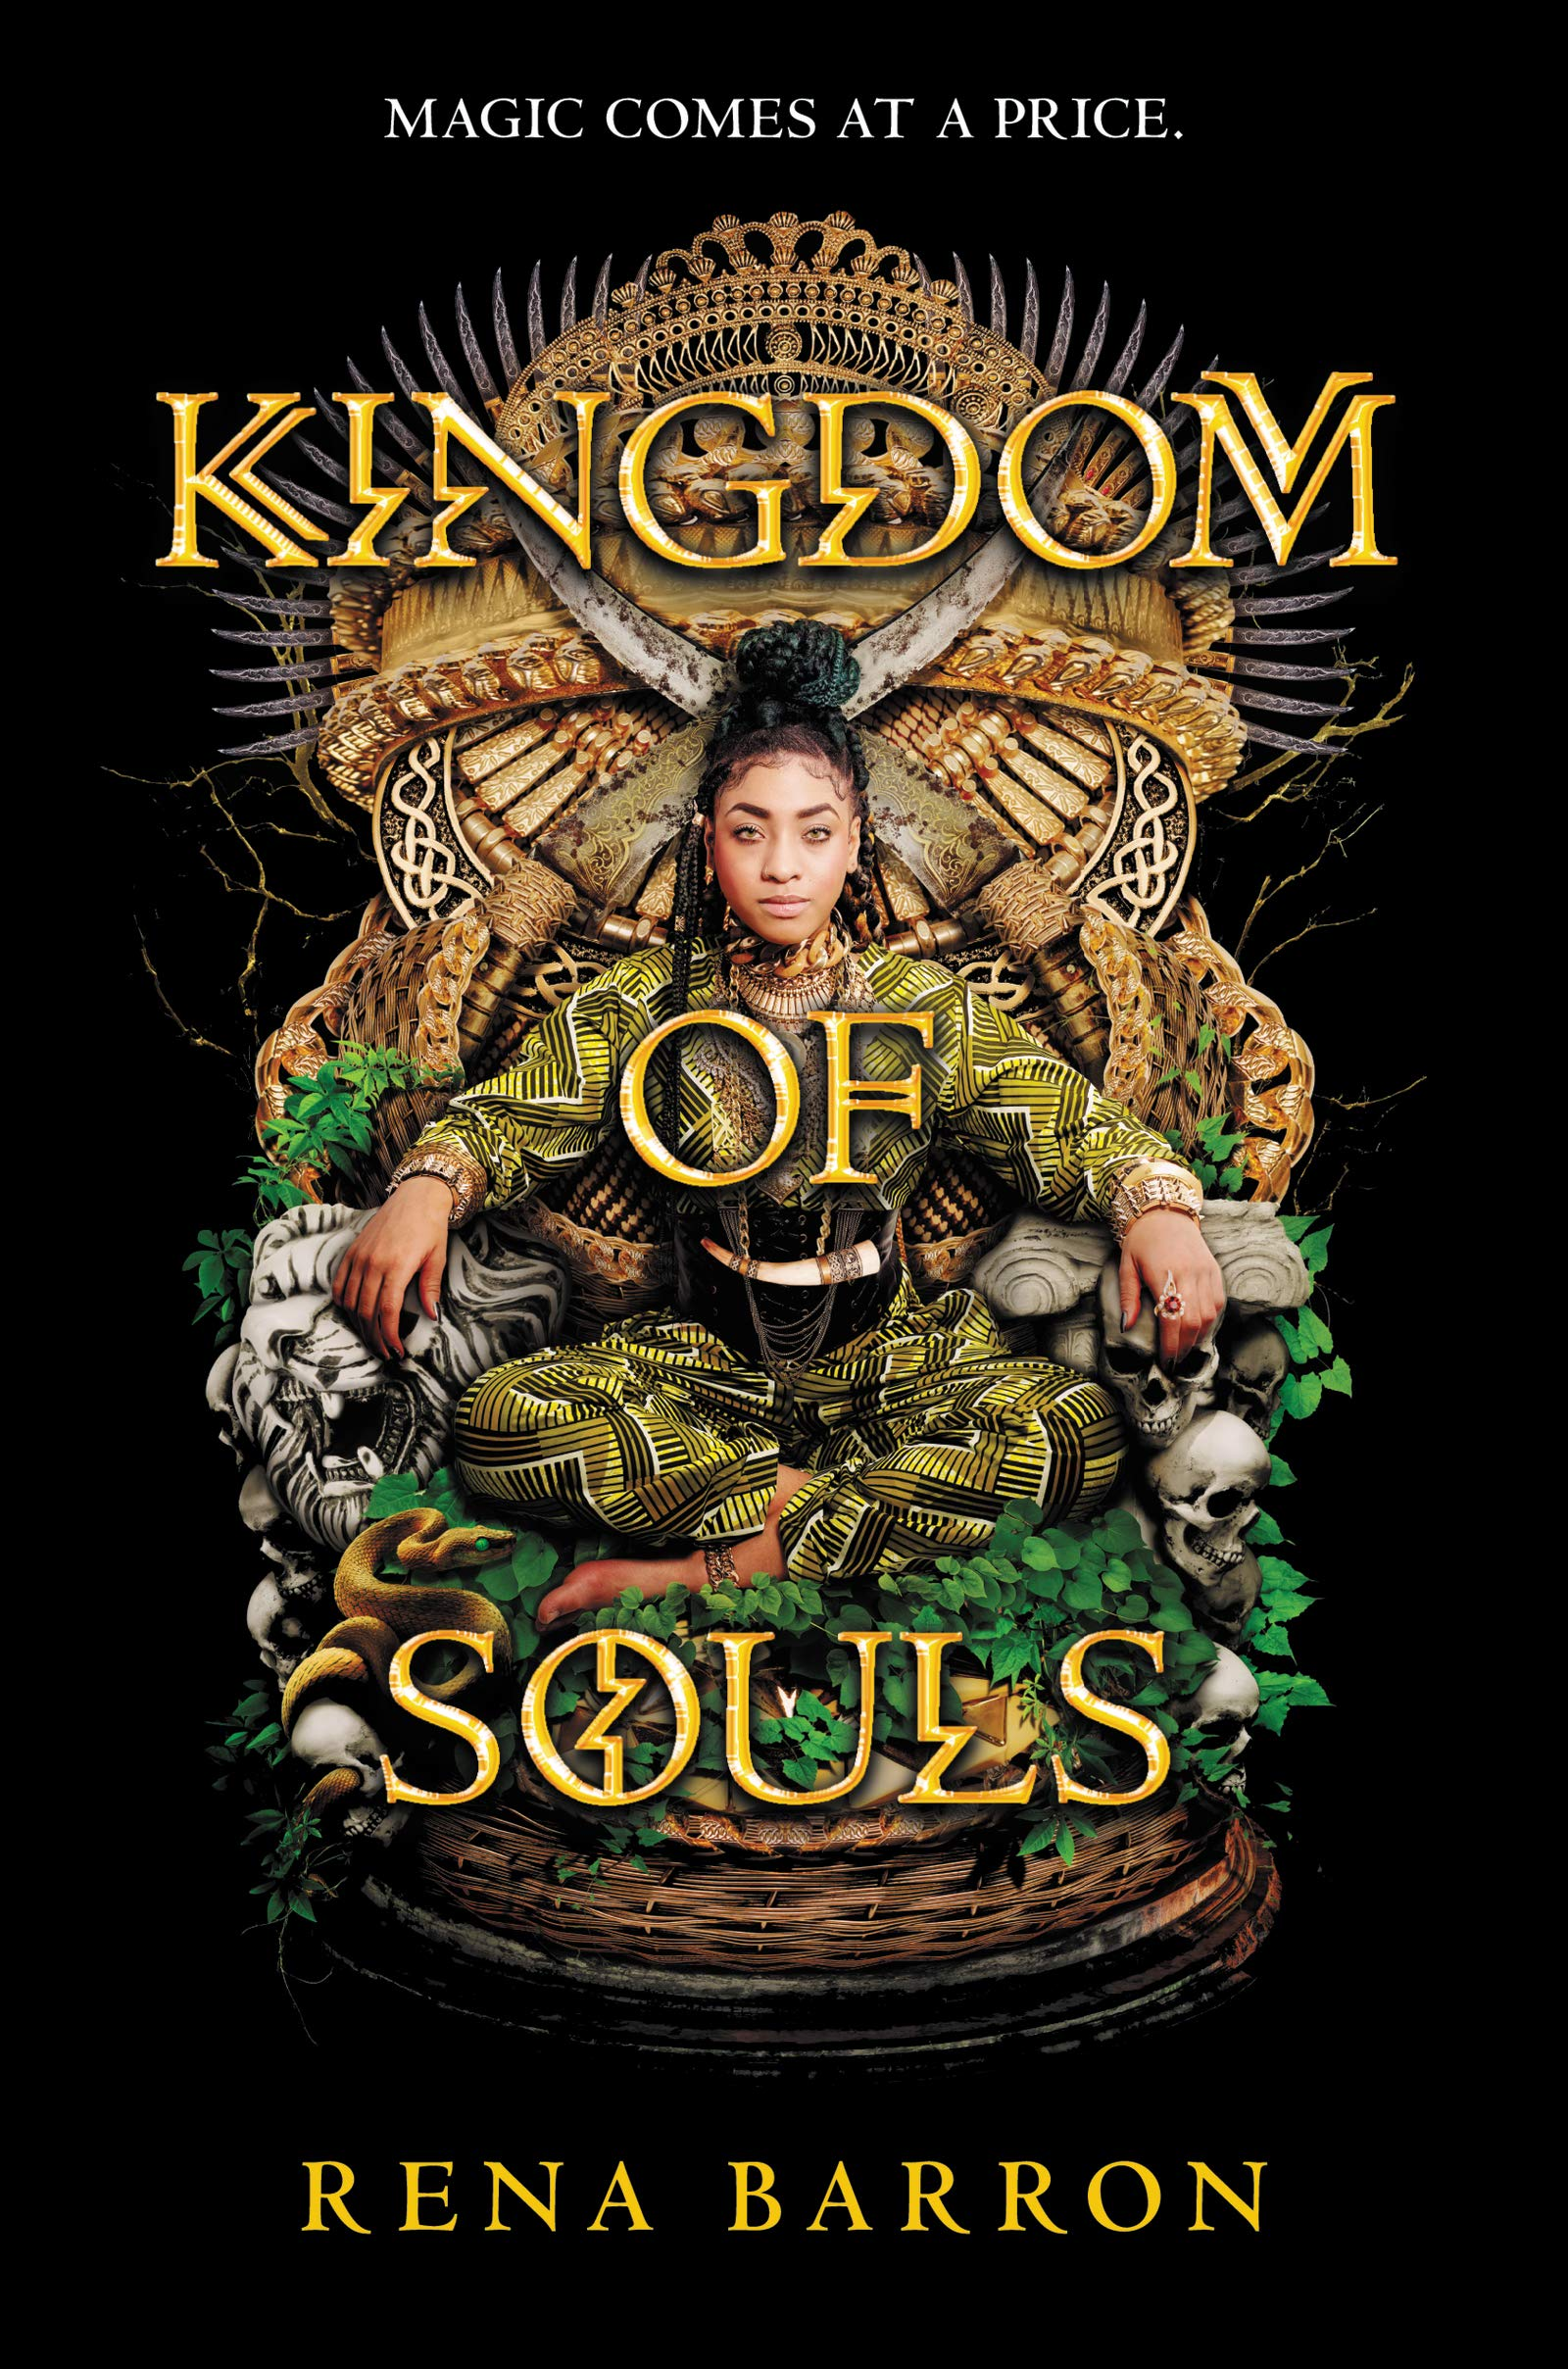 Amazon.com: Kingdom of Souls (9780062870957): Barron, Rena: Books